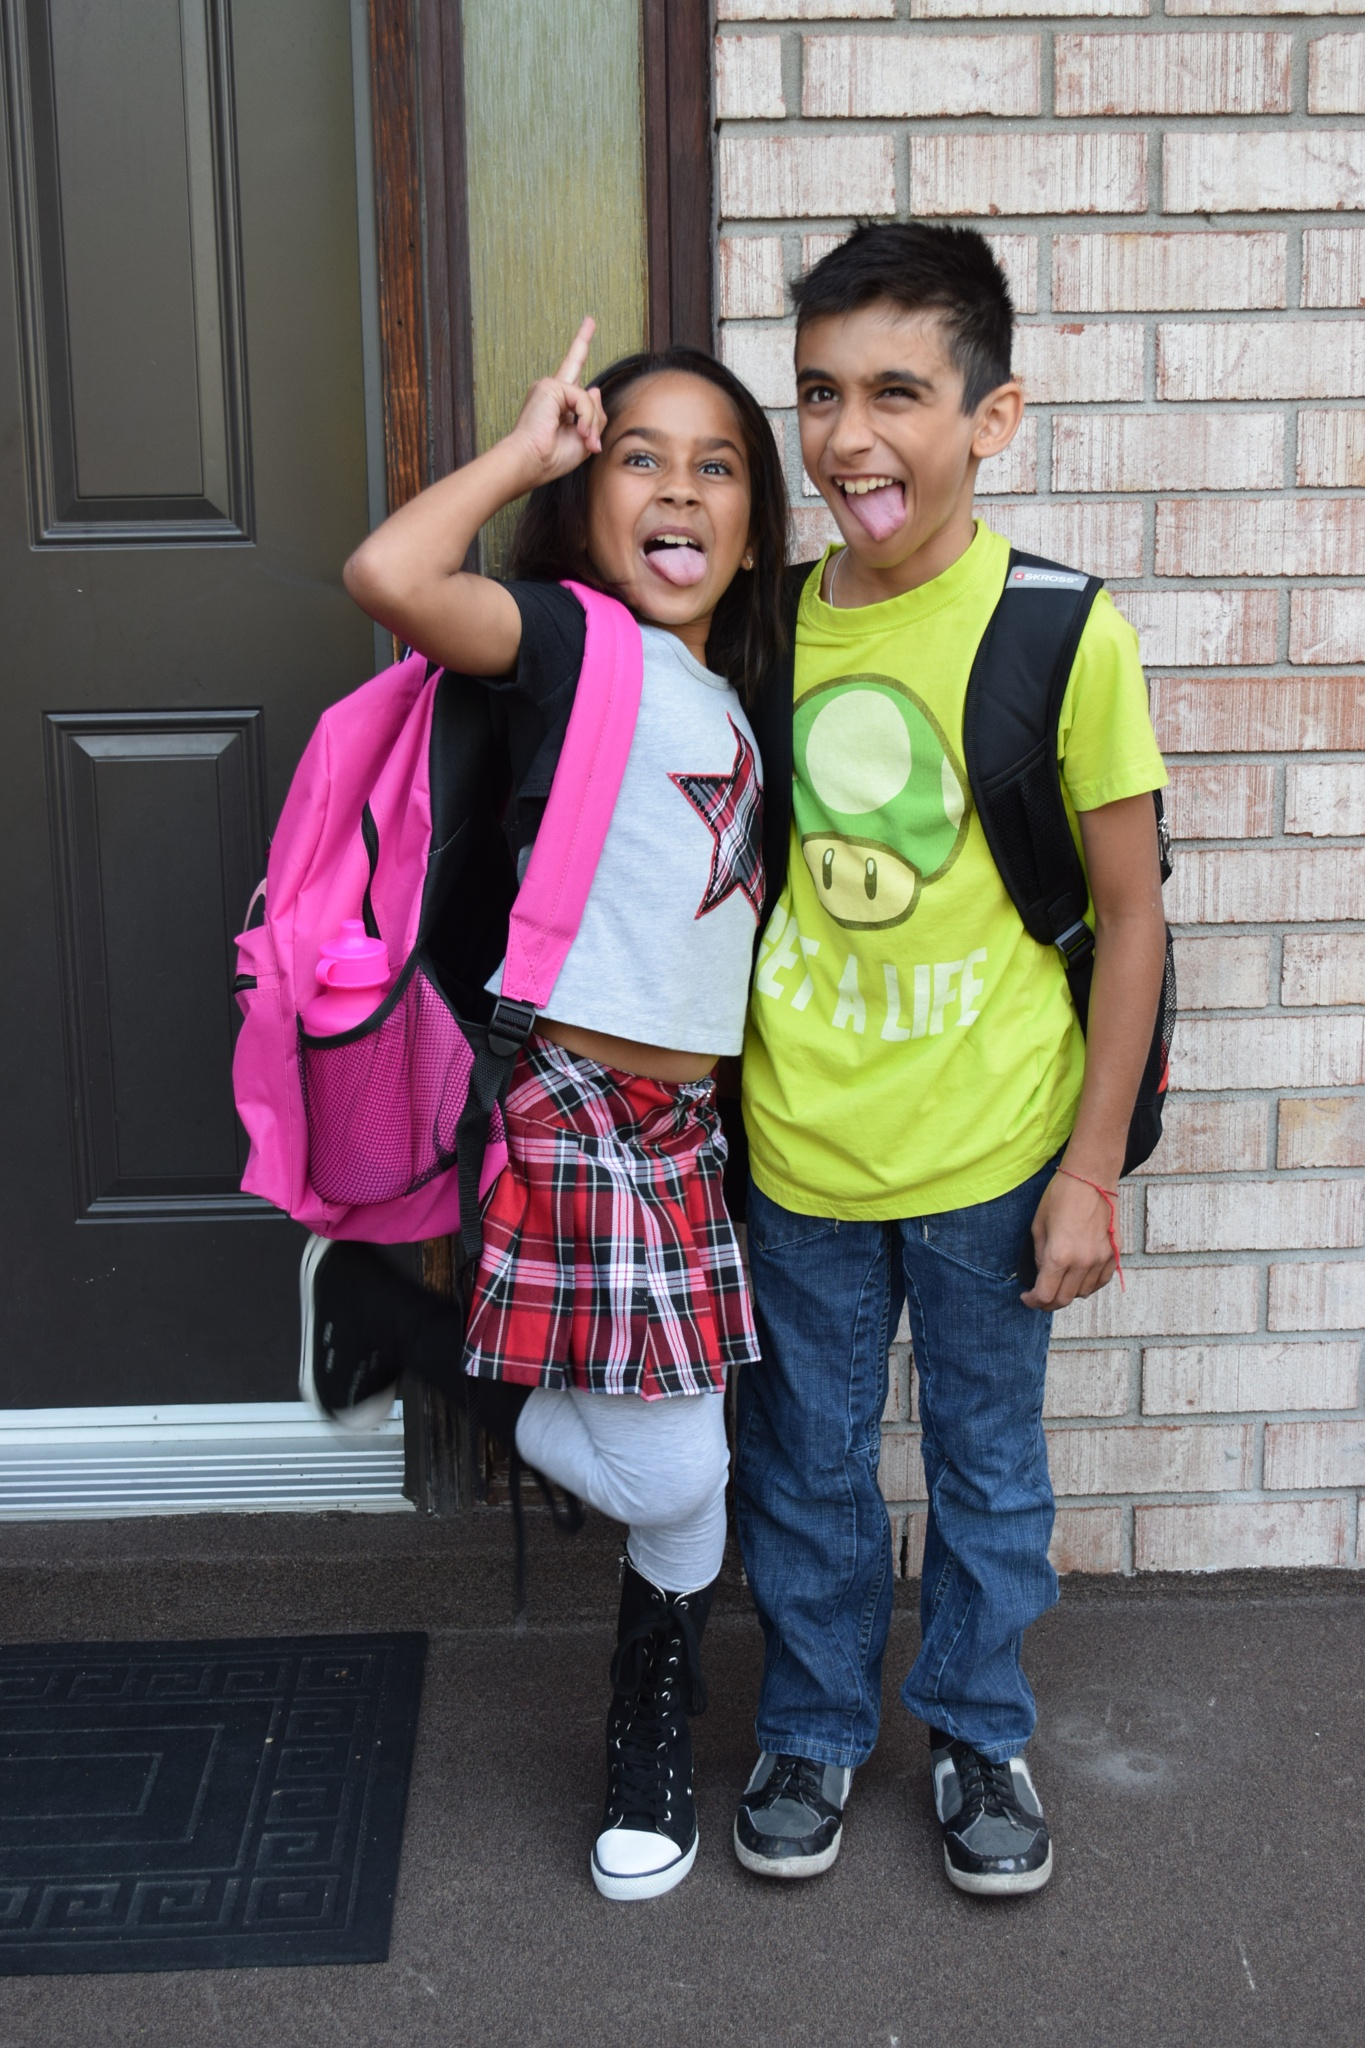 First day of school excitement by Olga Makridina-Bhalla